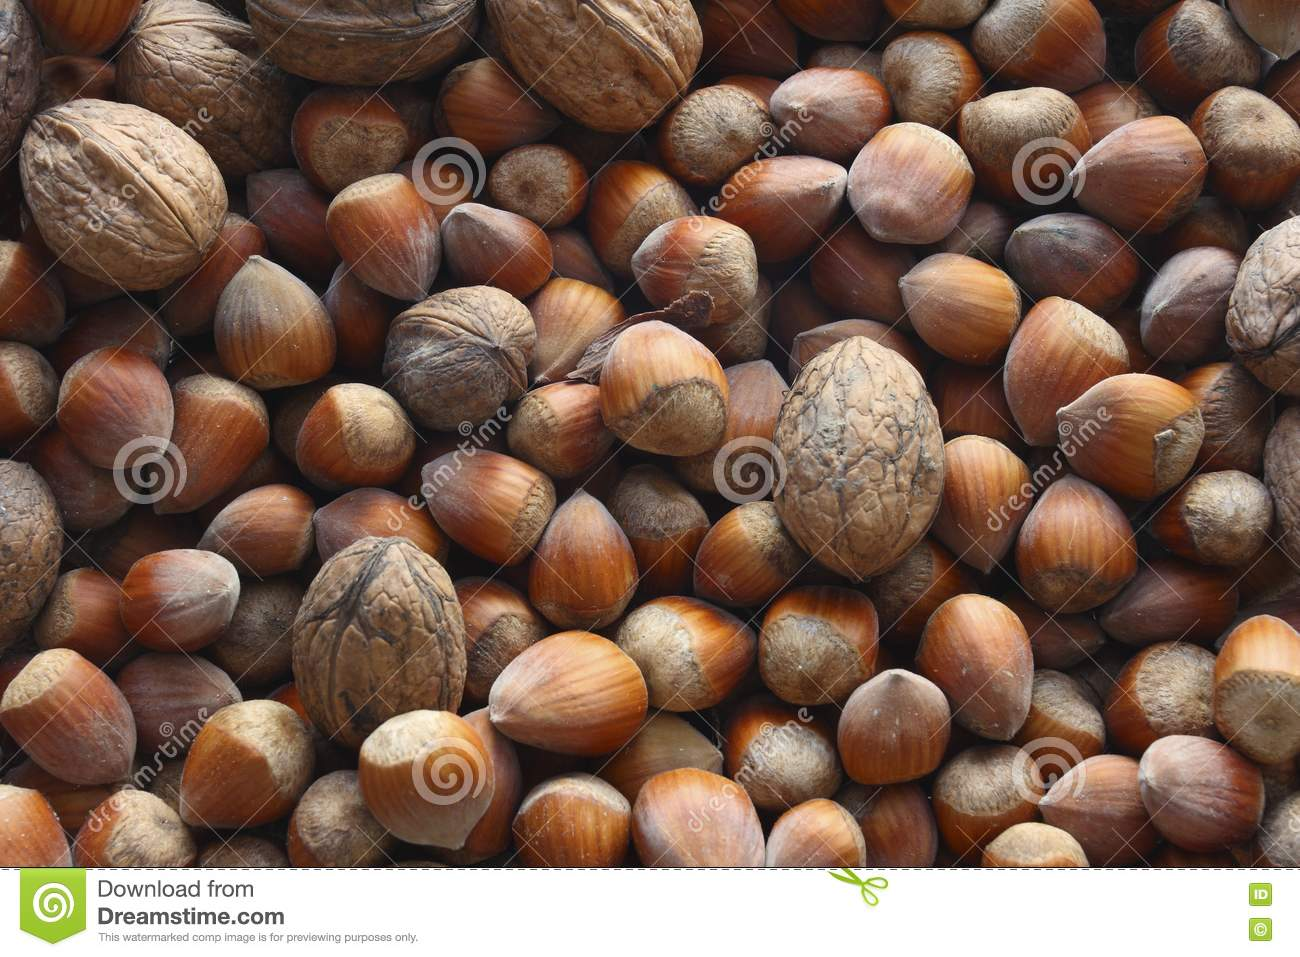 Hazel nuts and nuts